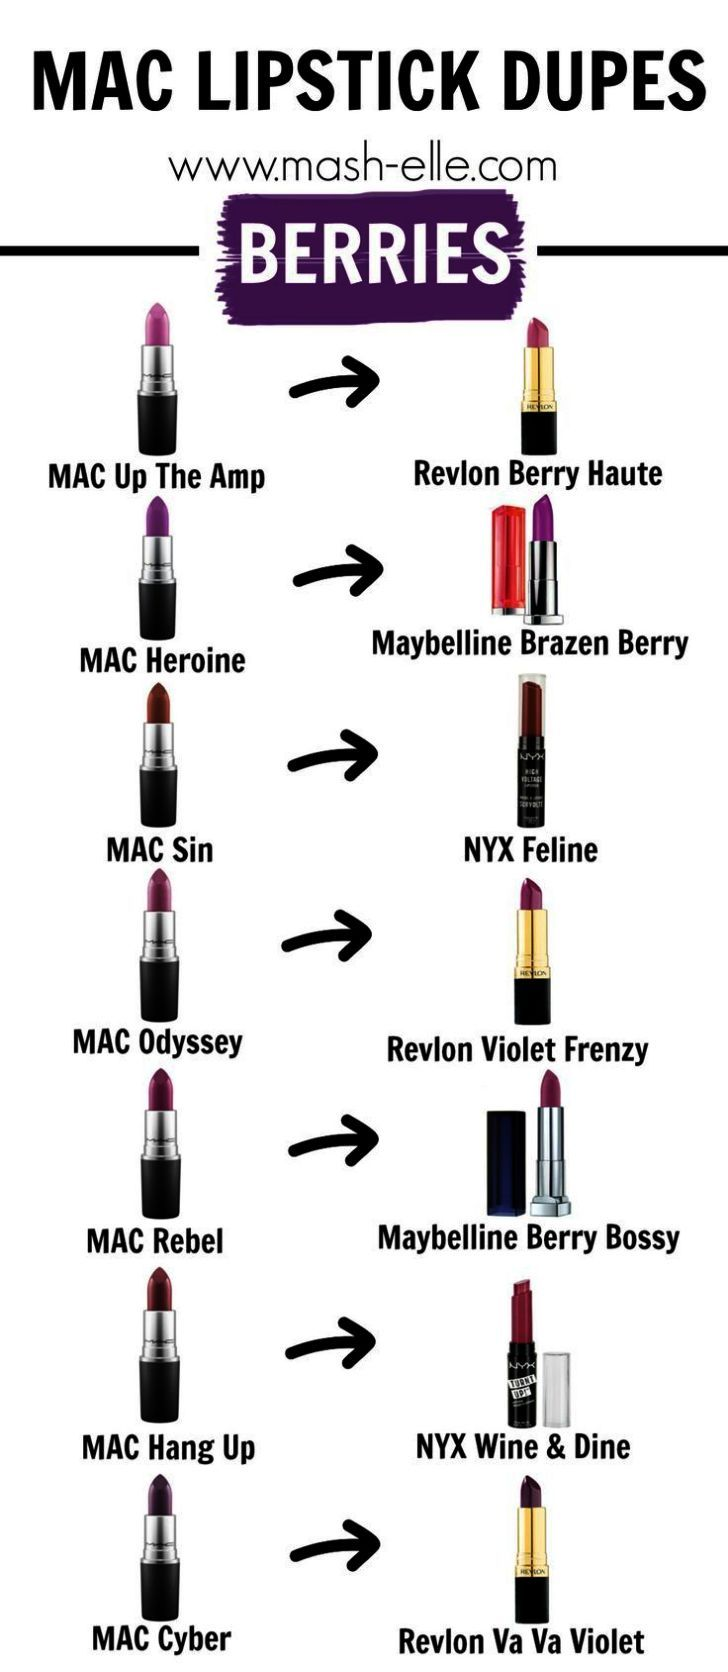 The Genetic Makeup Of An Organism Prepossessing 13667 Best Dupe Makeup Images On Pinterest